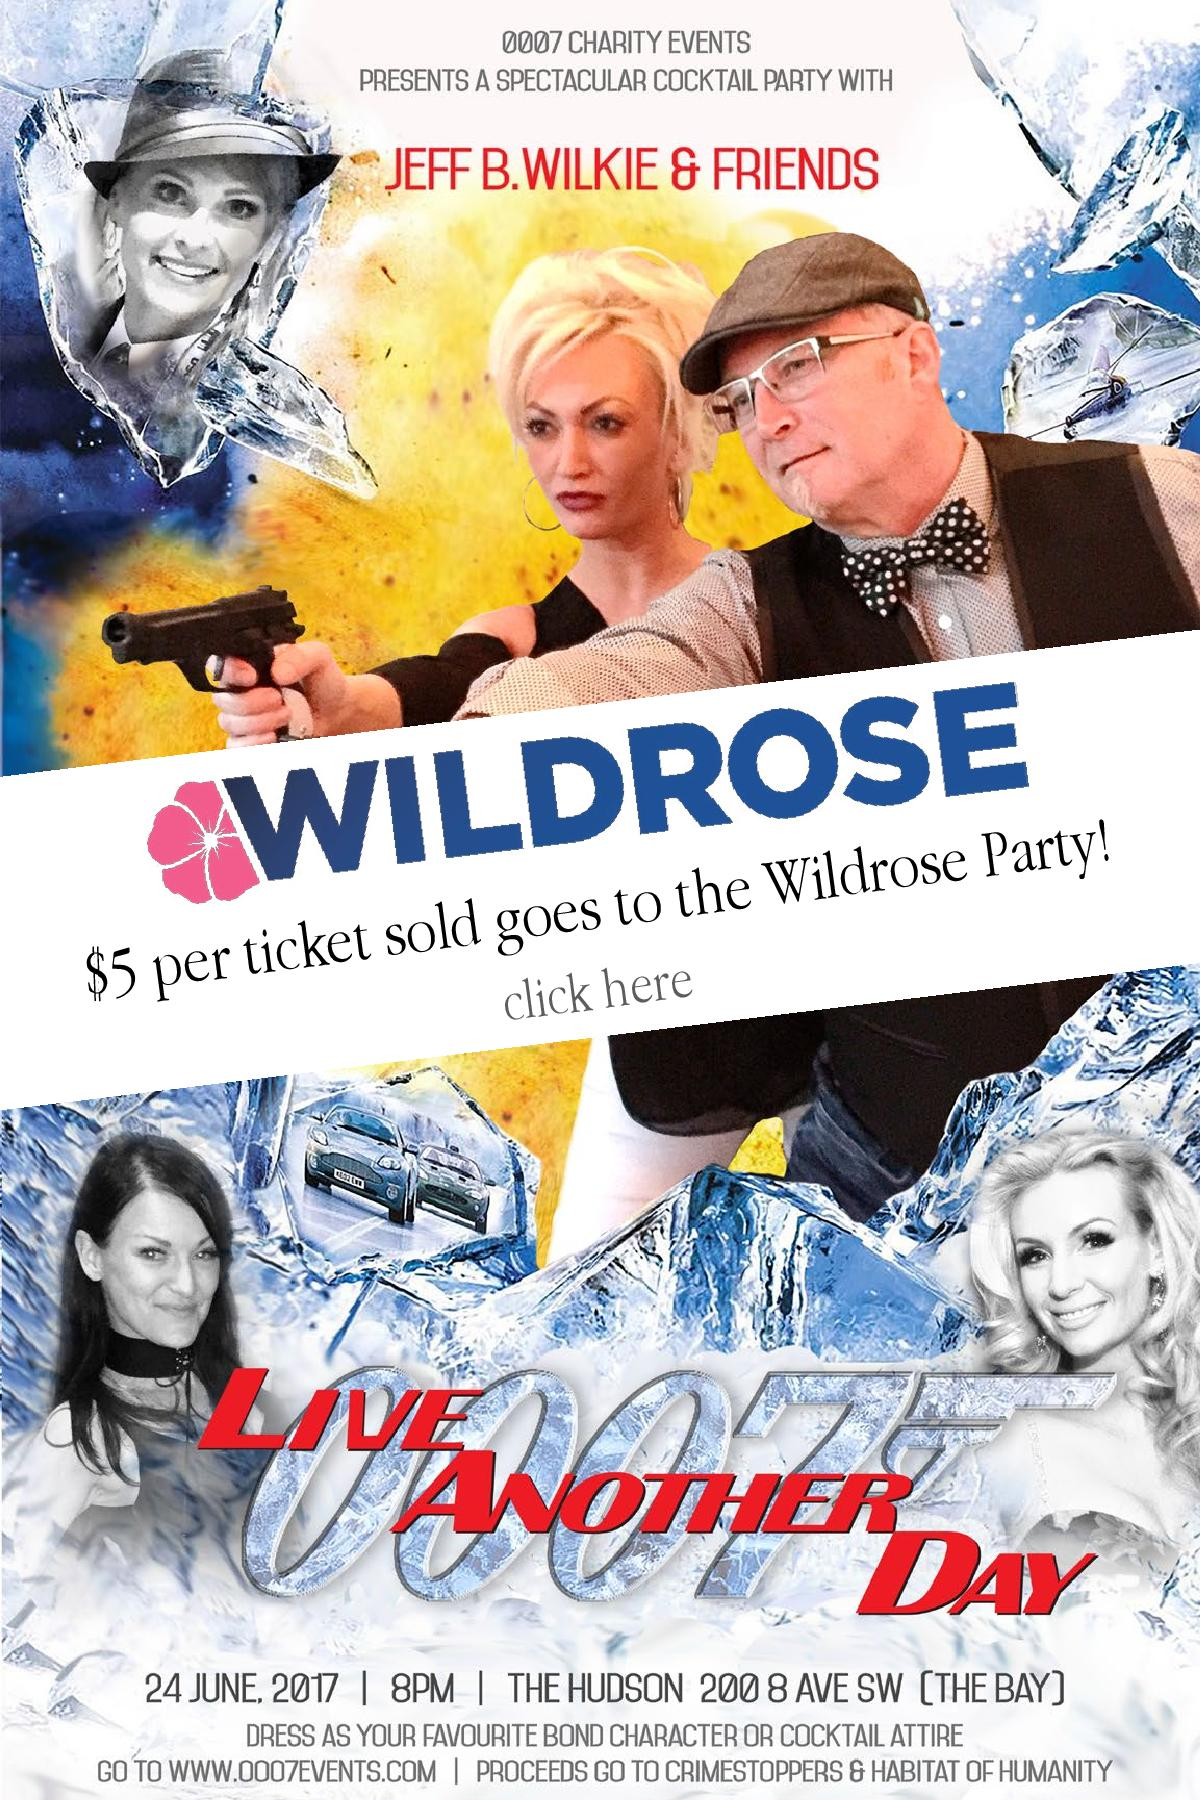 007_Wildrose_Party-page-001.jpg